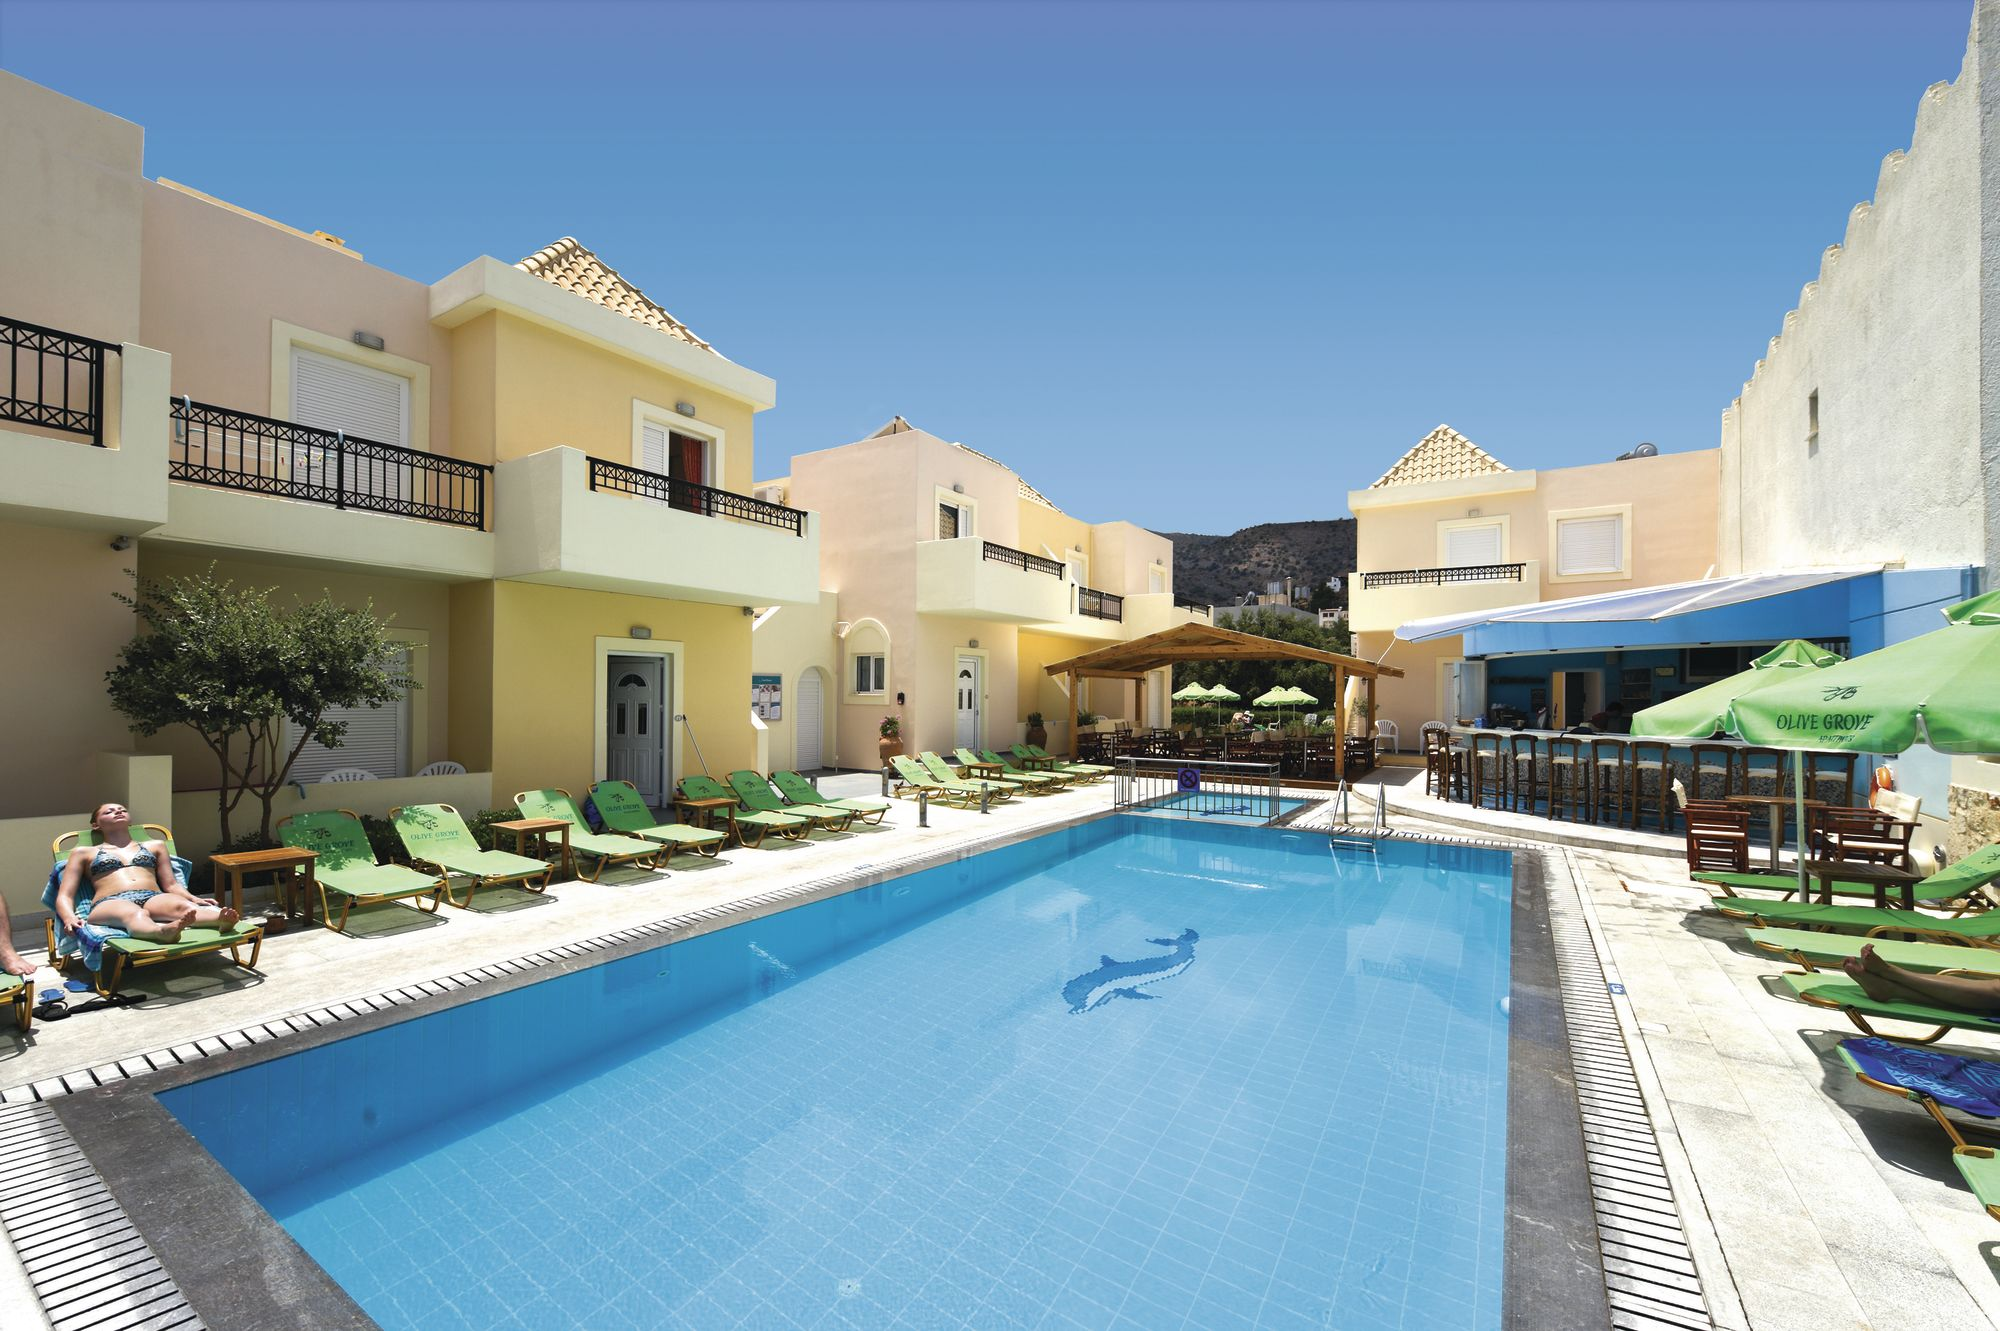 Holiday to Olive Grove Apartments in ELOUNDA (GREECE) for 4 nights (SC) departing from birmingham on 03 May